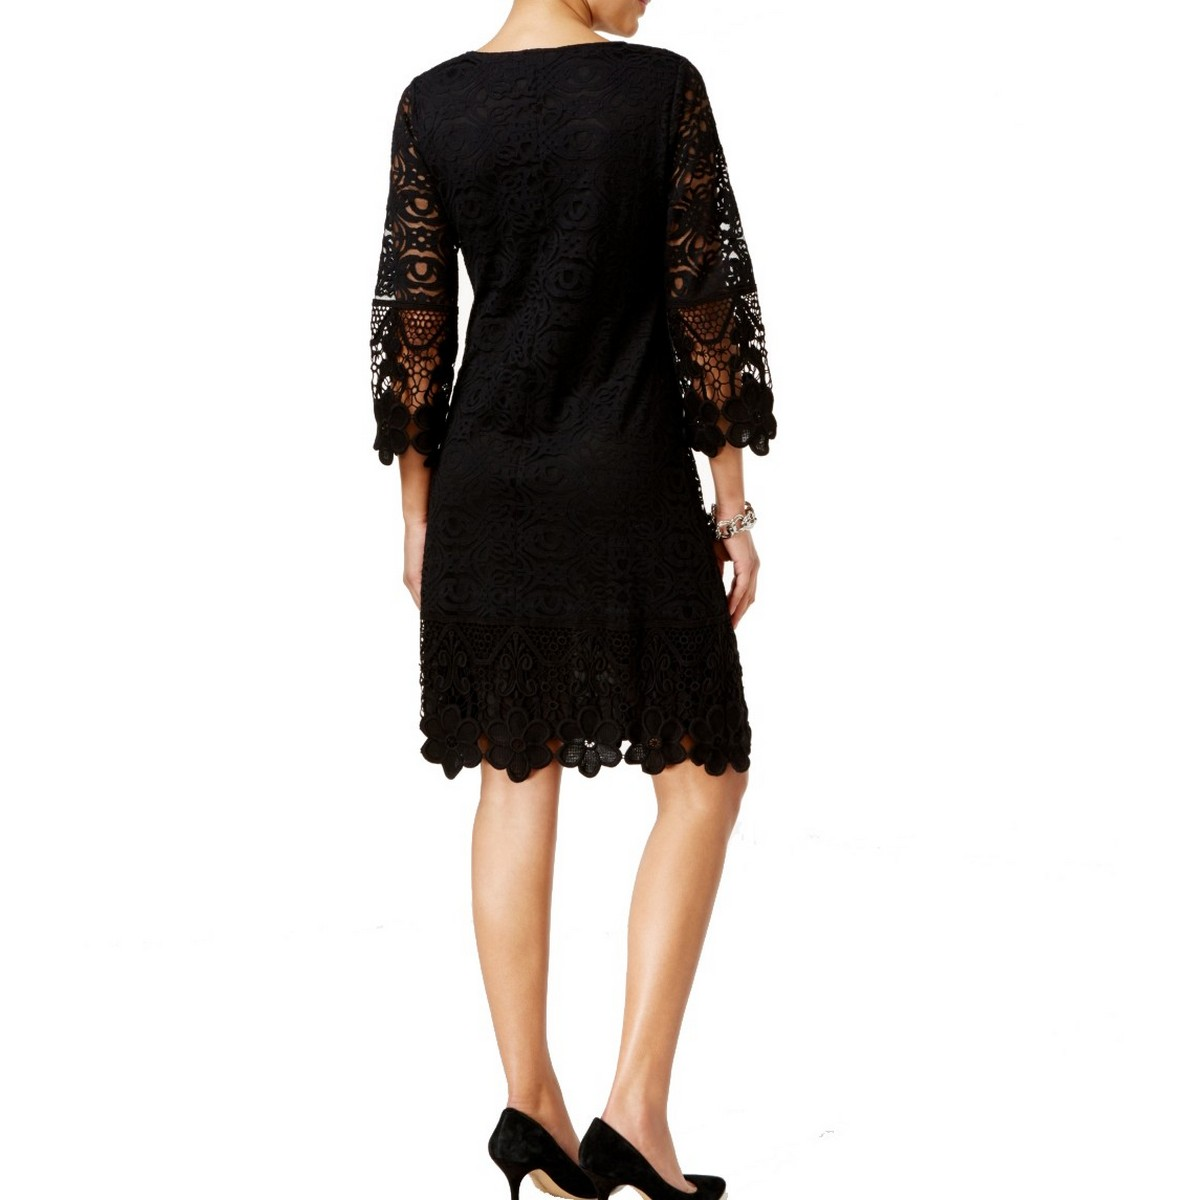 ALFANI NEW Women/'s Trumpet-sleeve Crochet Sheath Dress TEDO